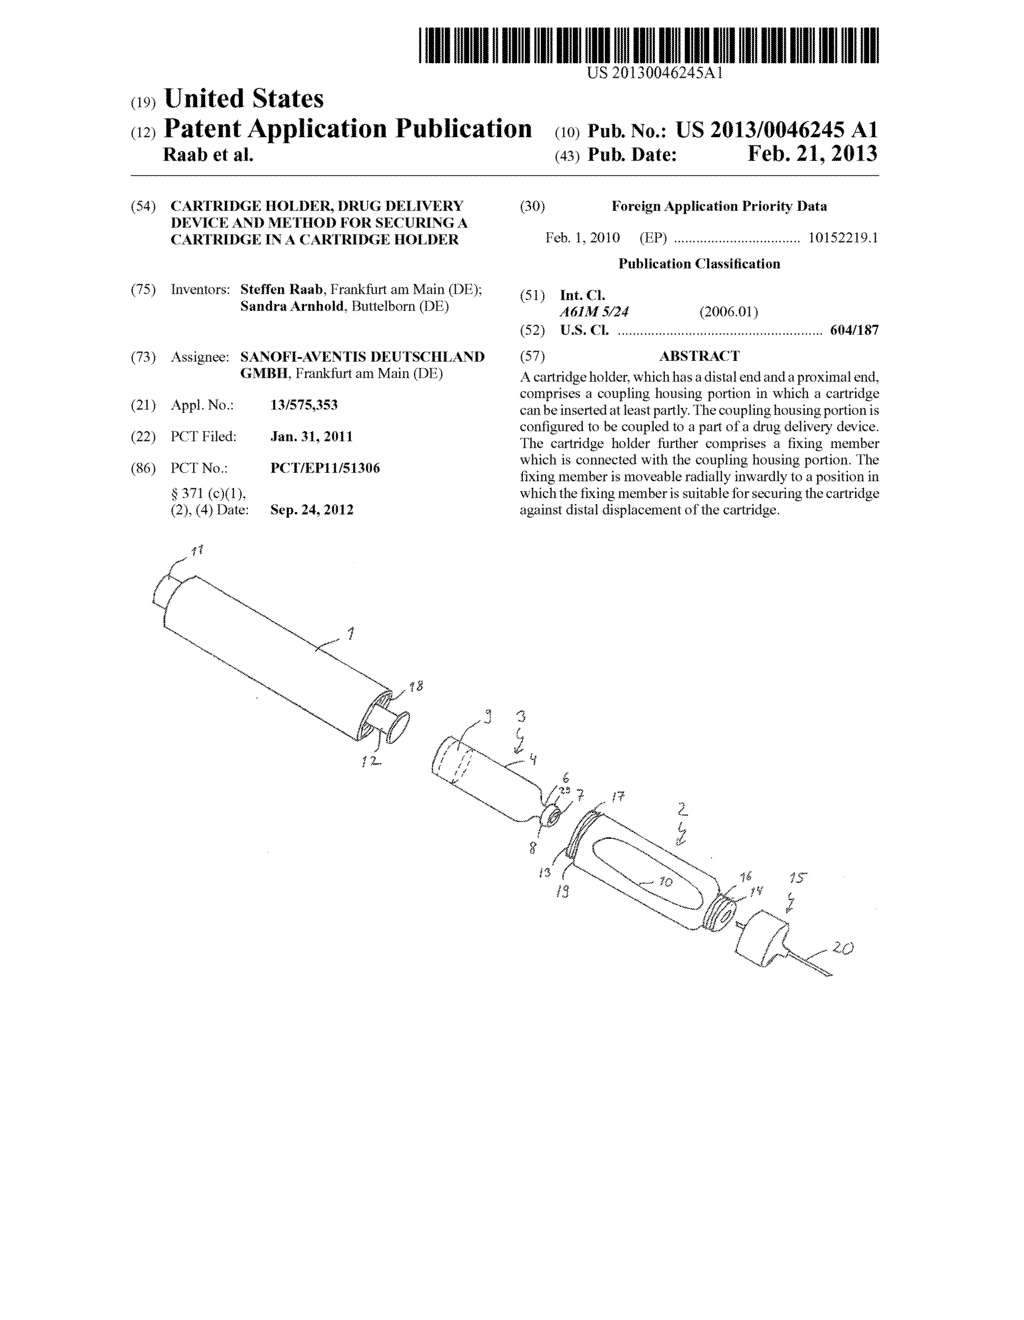 CARTRIDGE HOLDER, DRUG DELIVERY DEVICE AND METHOD FOR SECURING A CARTRIDGE     IN A CARTRIDGE HOLDER - diagram, schematic, and image 01